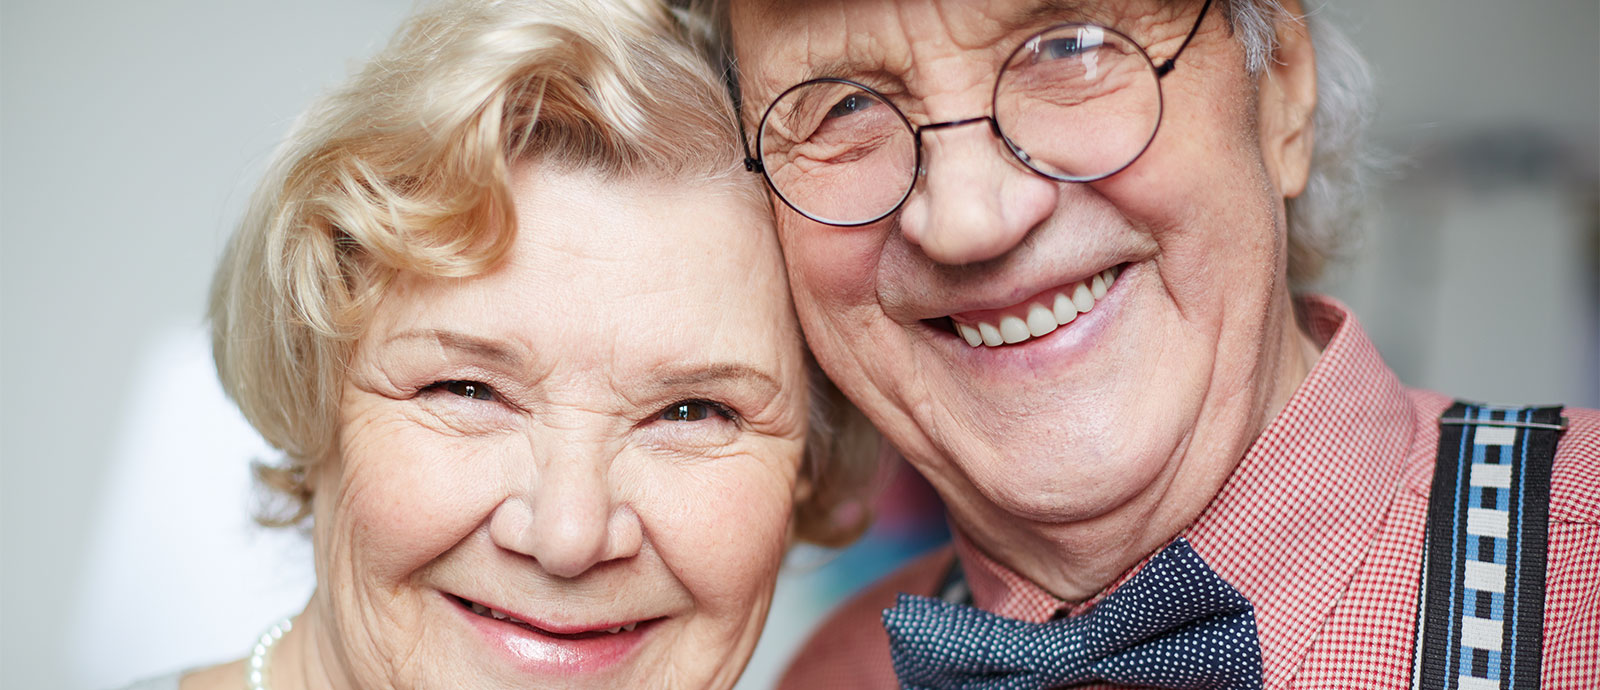 Senior living community has special events you should take a look at